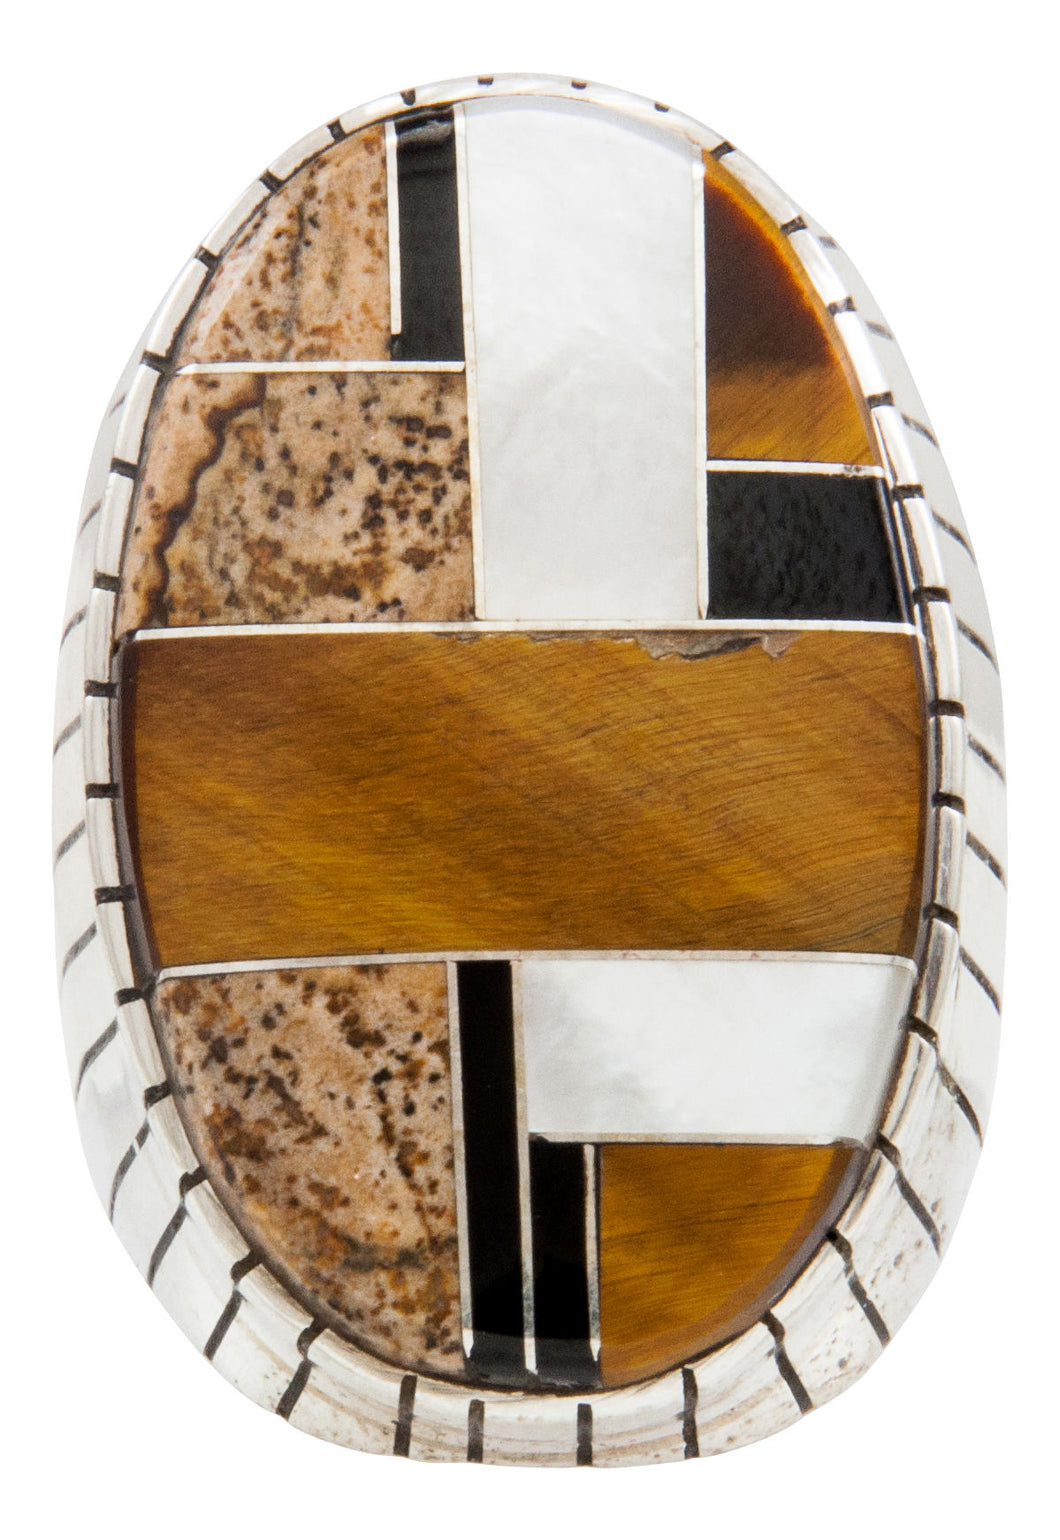 Navajo Native American Tiger Eye and Onyx Inlay Ring Size 10 1/4 by Ray Jack SKU231938